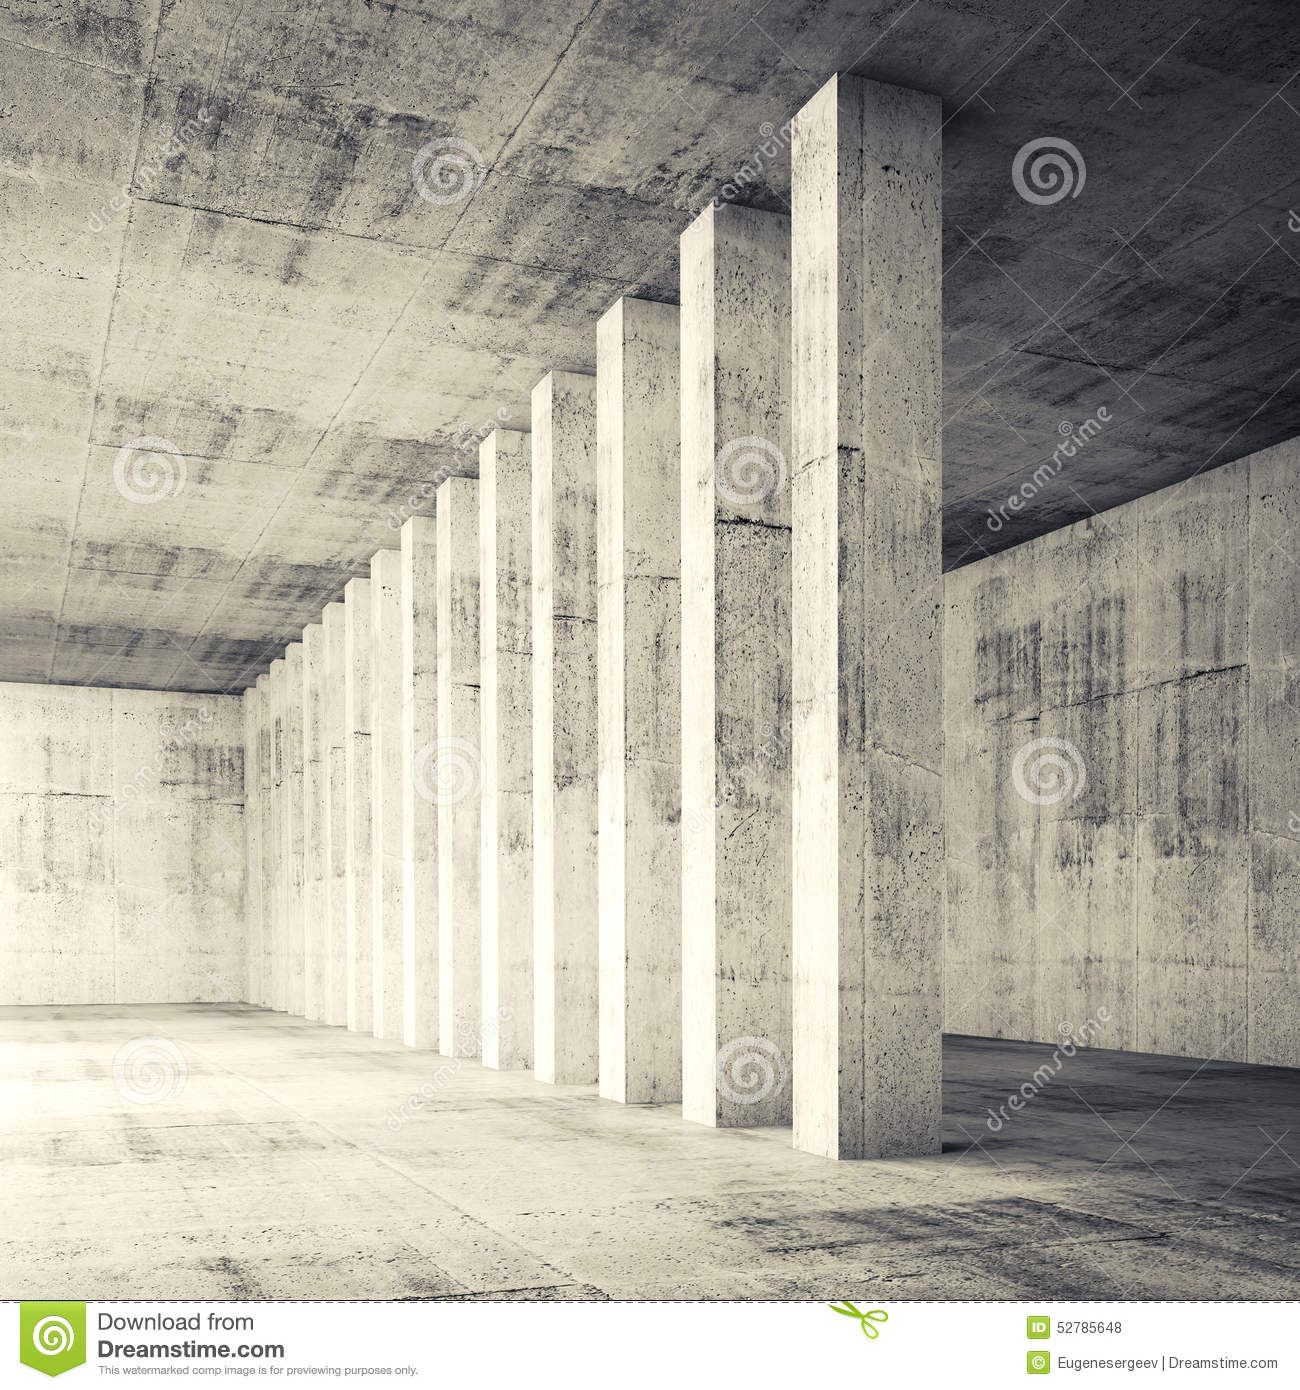 3d Square Empty Interior With Concrete Walls And Columns